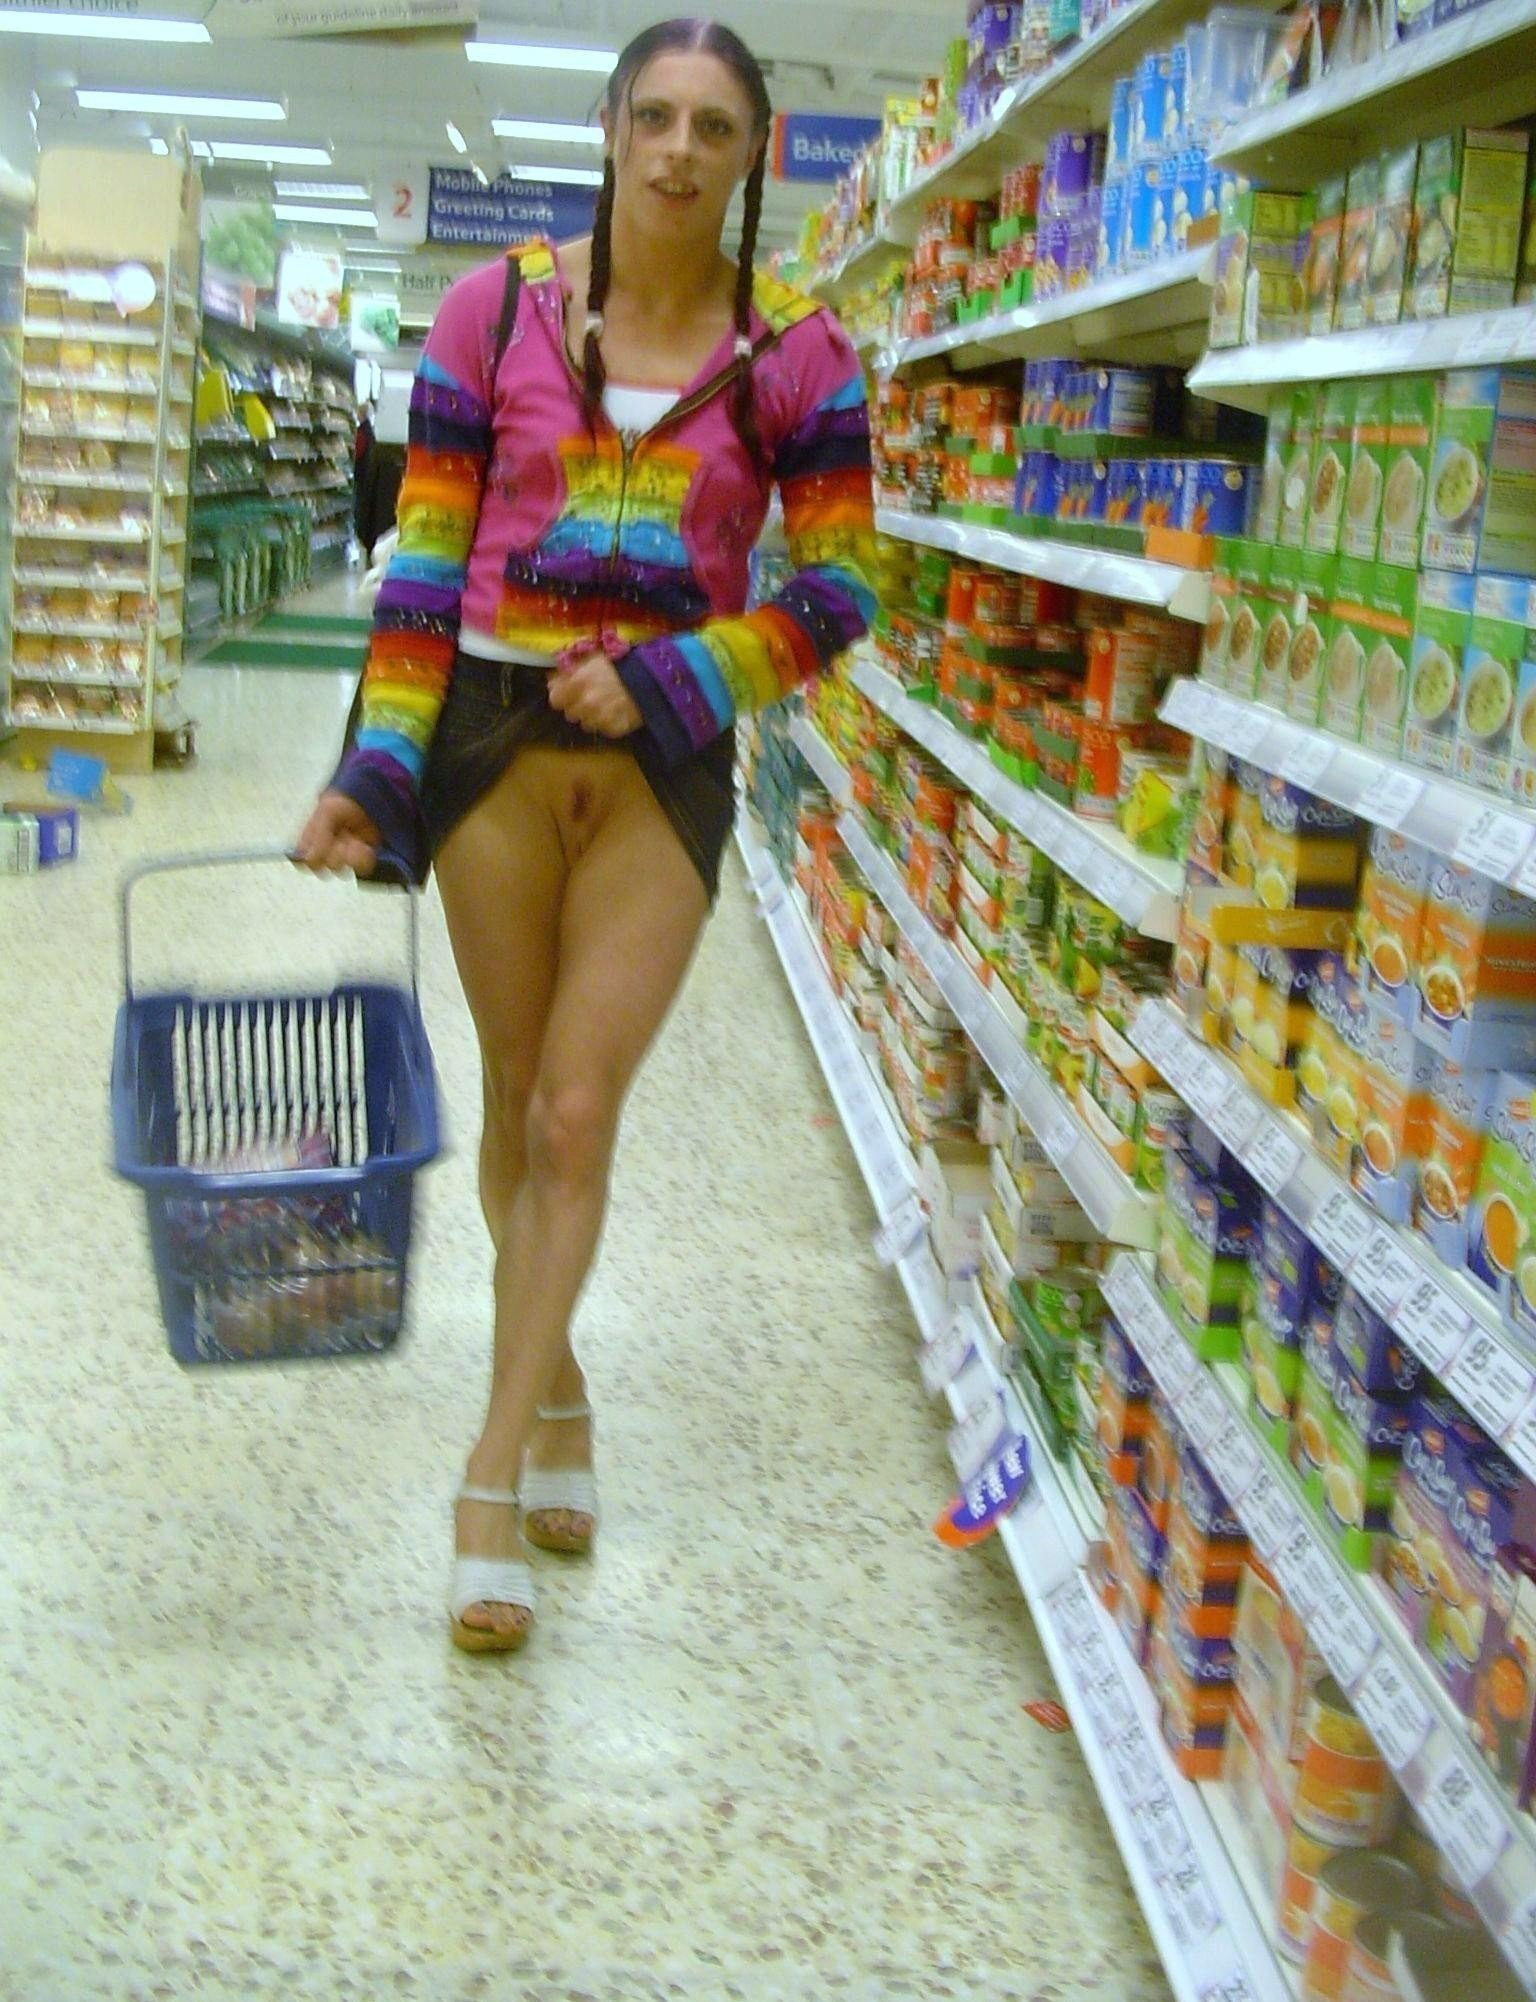 Woman Shits In Supermarket